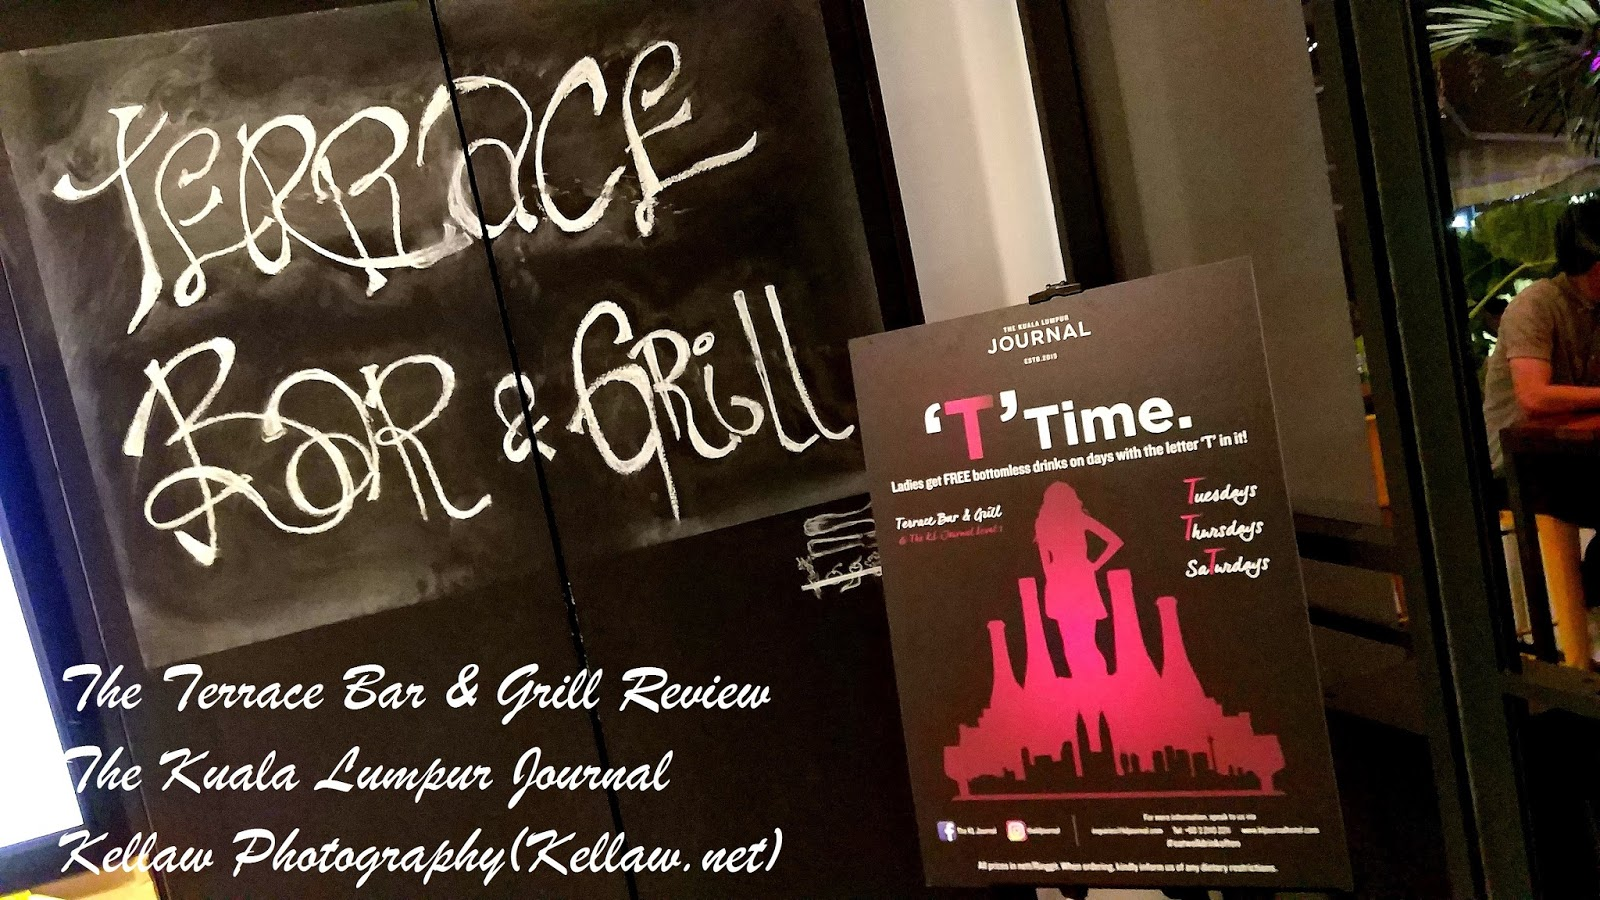 Terrace bar grill the kl journal review for Terrace bar grill